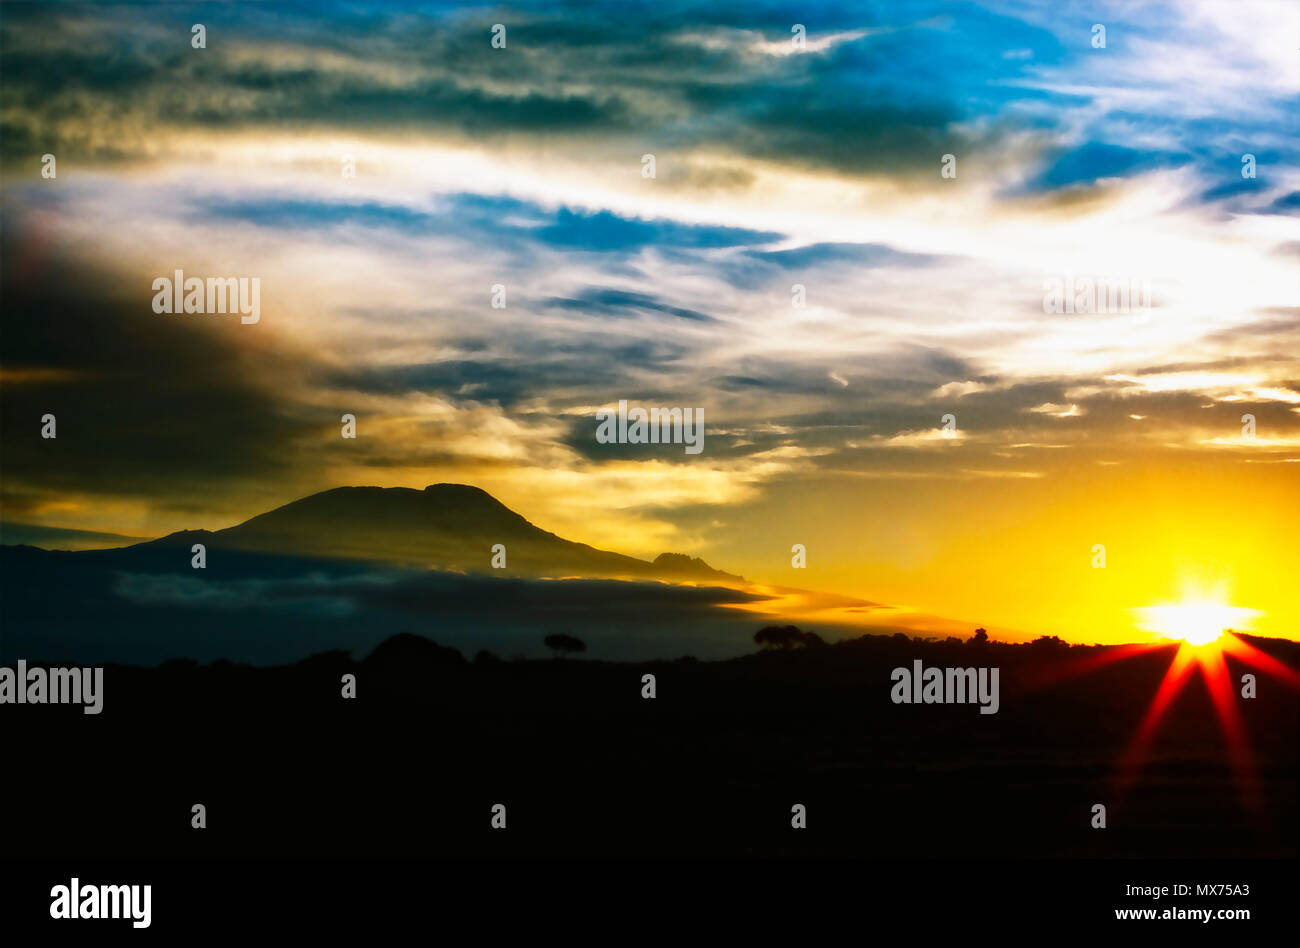 Sunrise at Mount Kilimanjaro, Tanzania - Stock Image